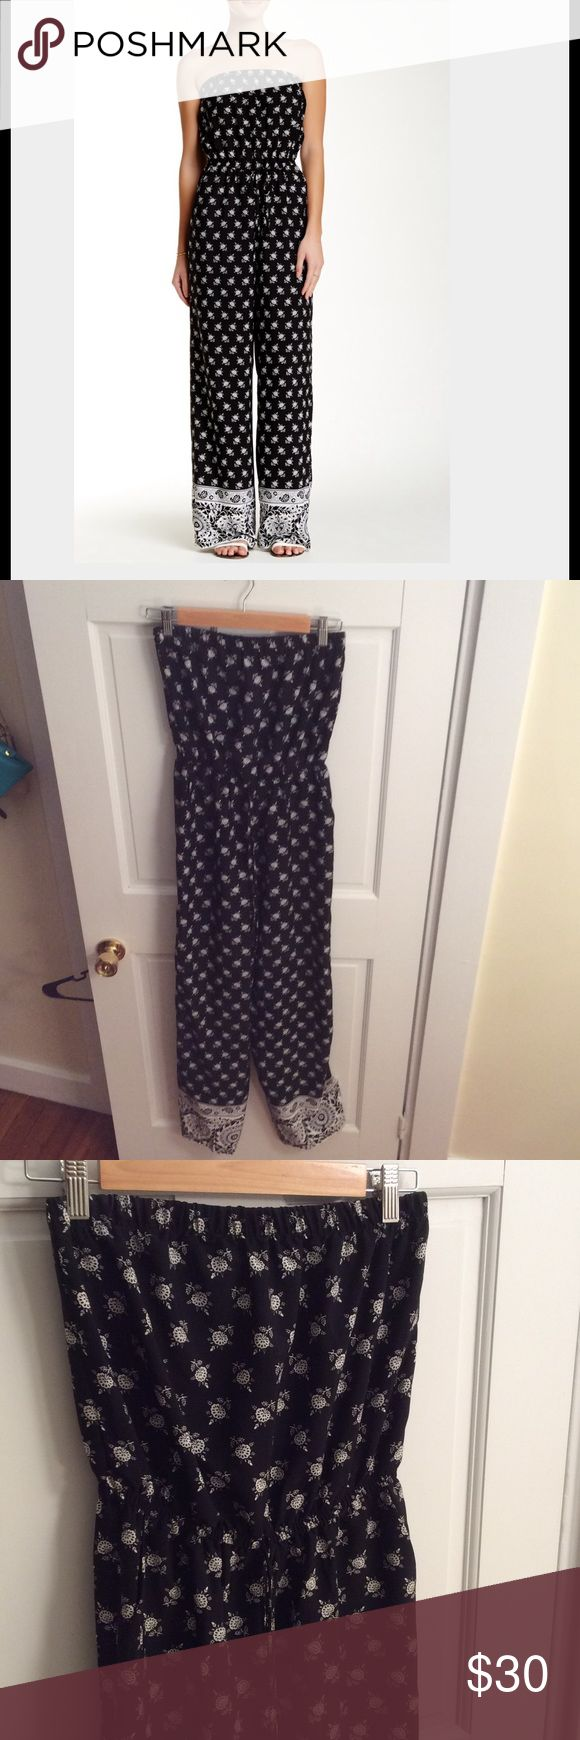 Strapless Jumpsuit OOTD strapless black and white jumpsuit. Only worn once and in excellent condition! OOTD Other